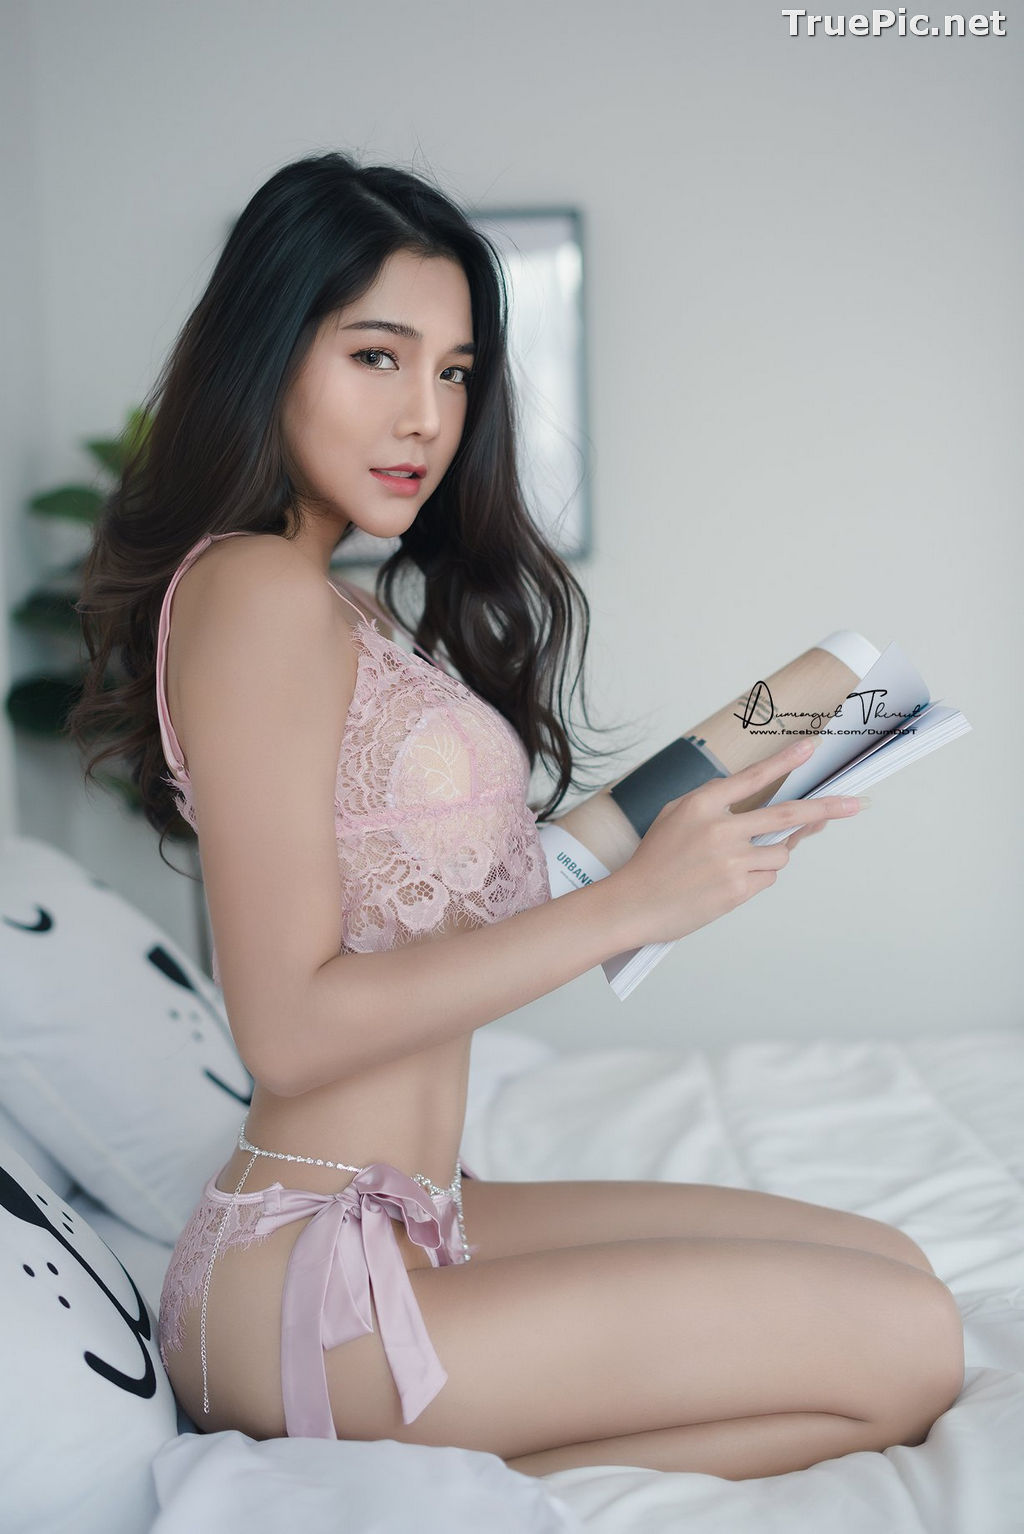 Image Thailand Model - Phitchamol Srijantanet - Beautiful Angel and Lingerie - TruePic.net - Picture-4